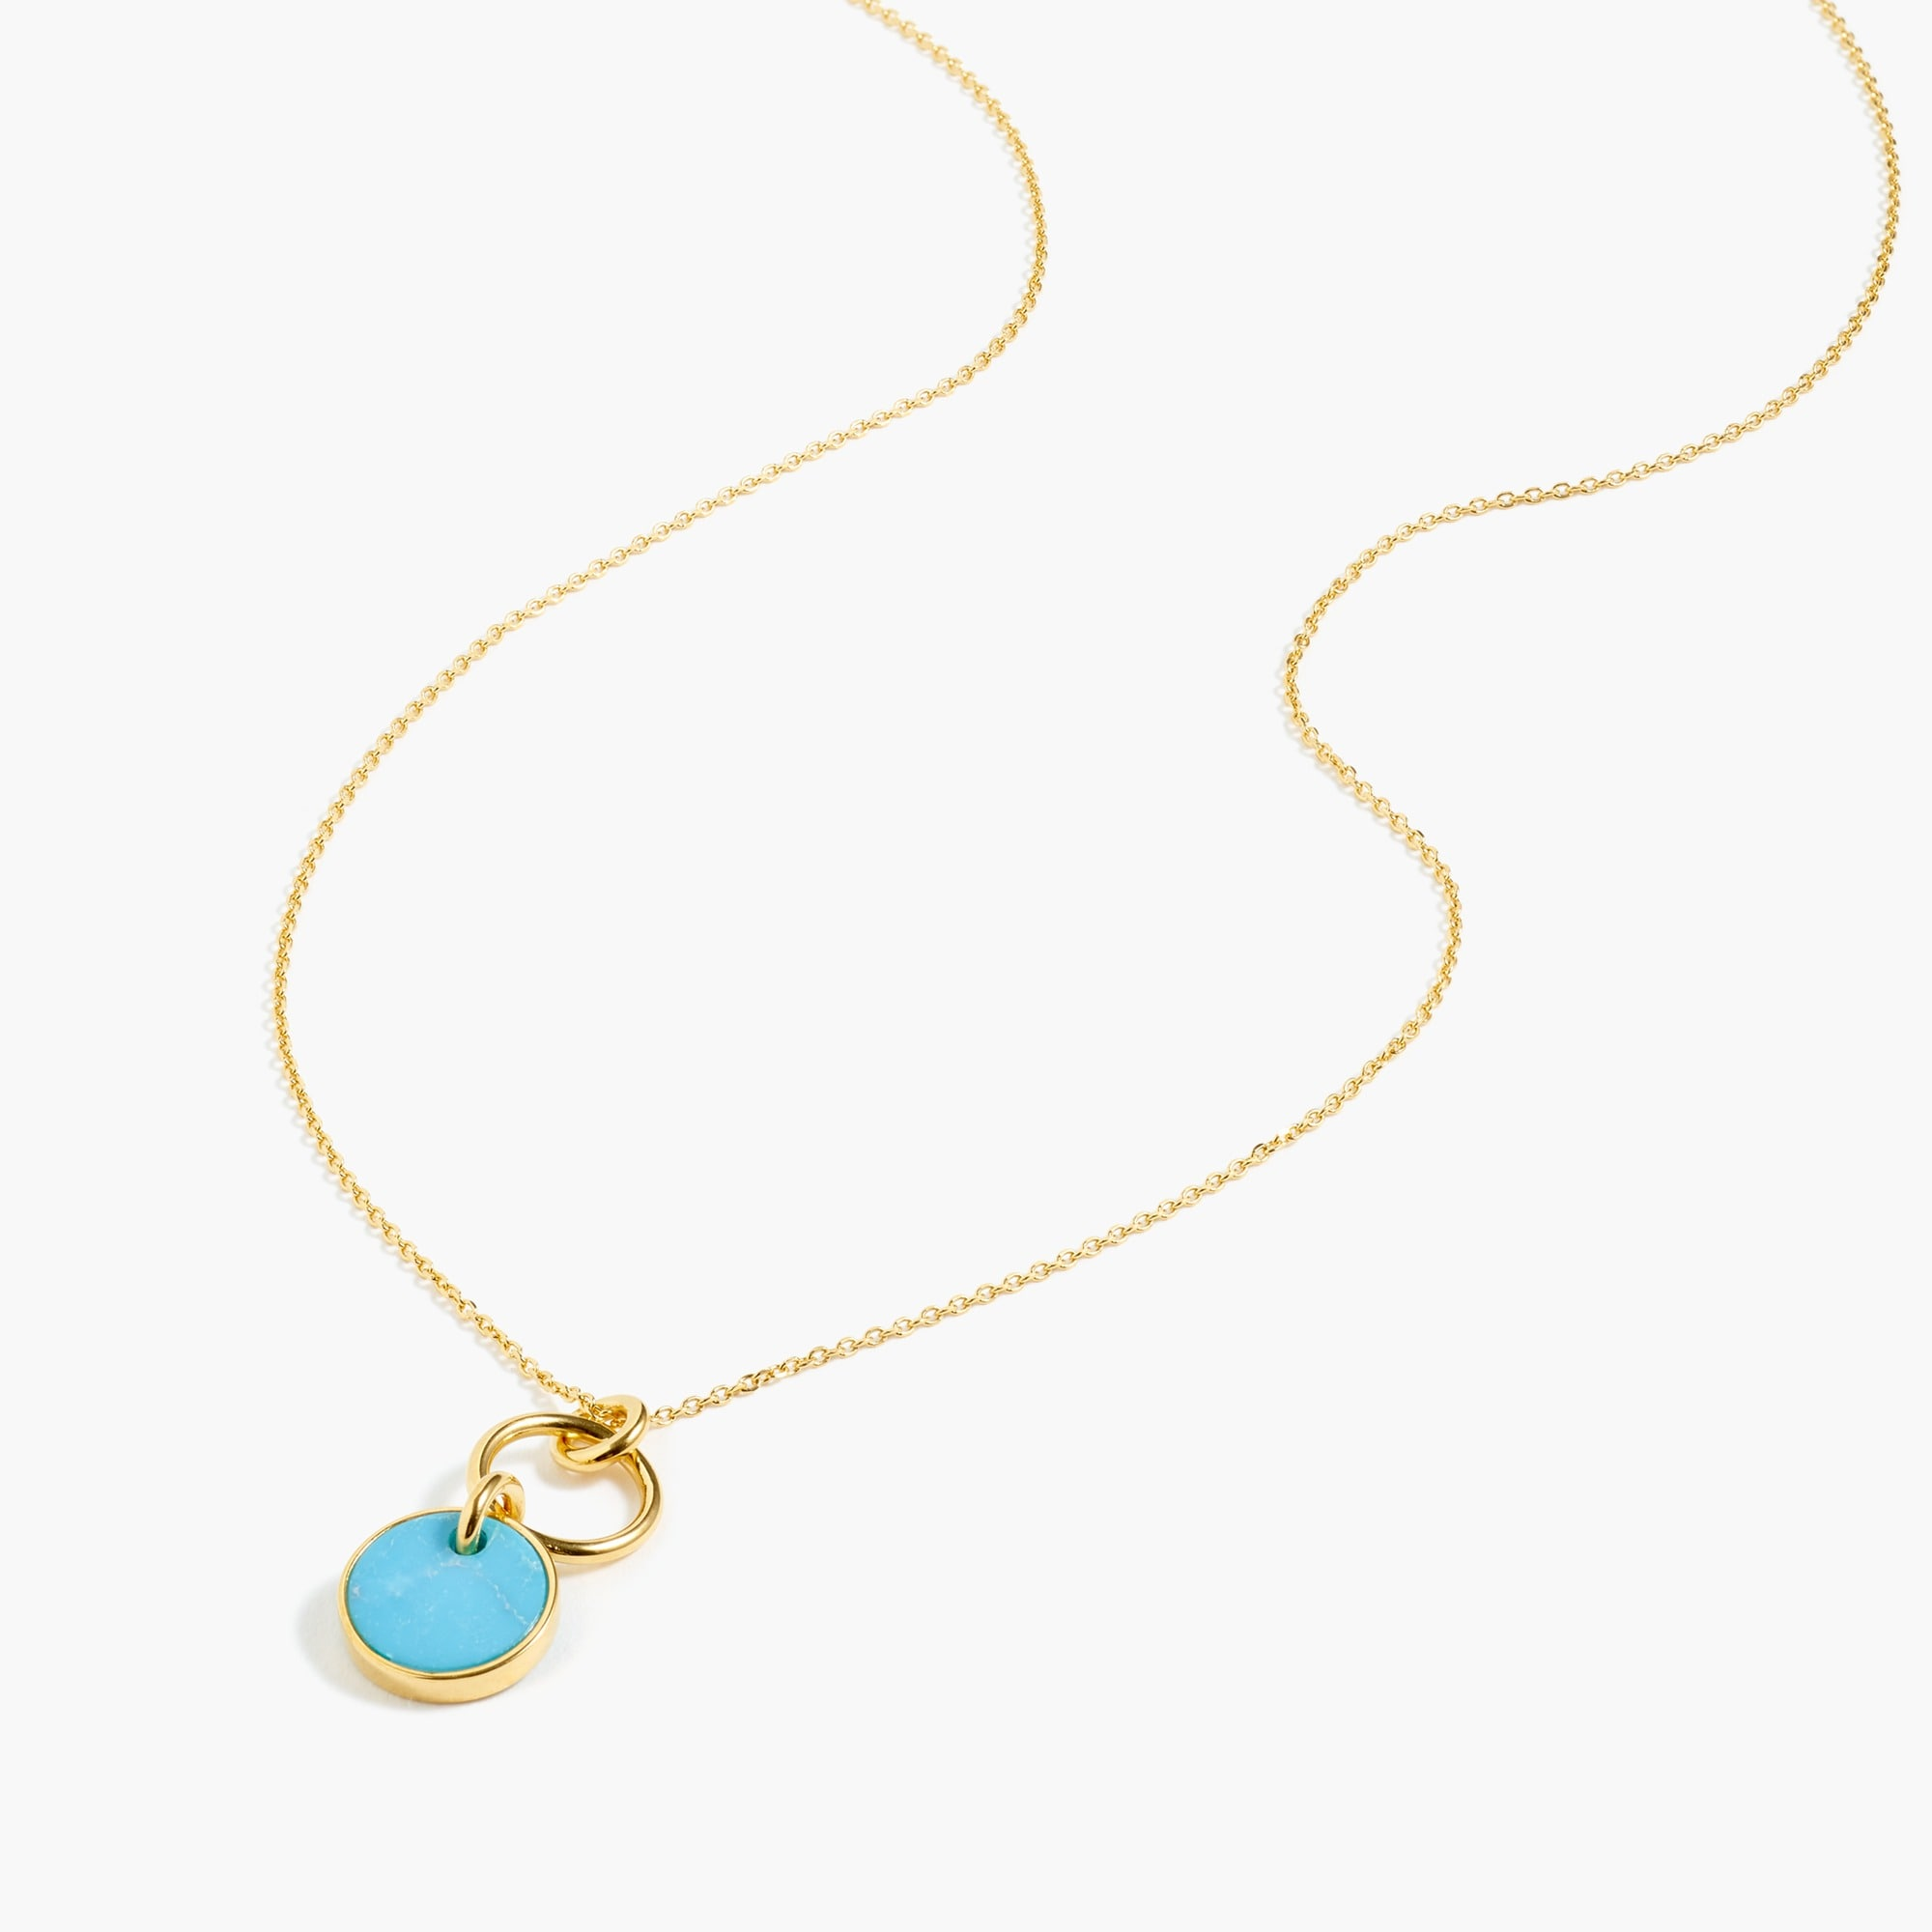 Image 2 for Demi-fine 14k gold-plated turquoise pendant necklace